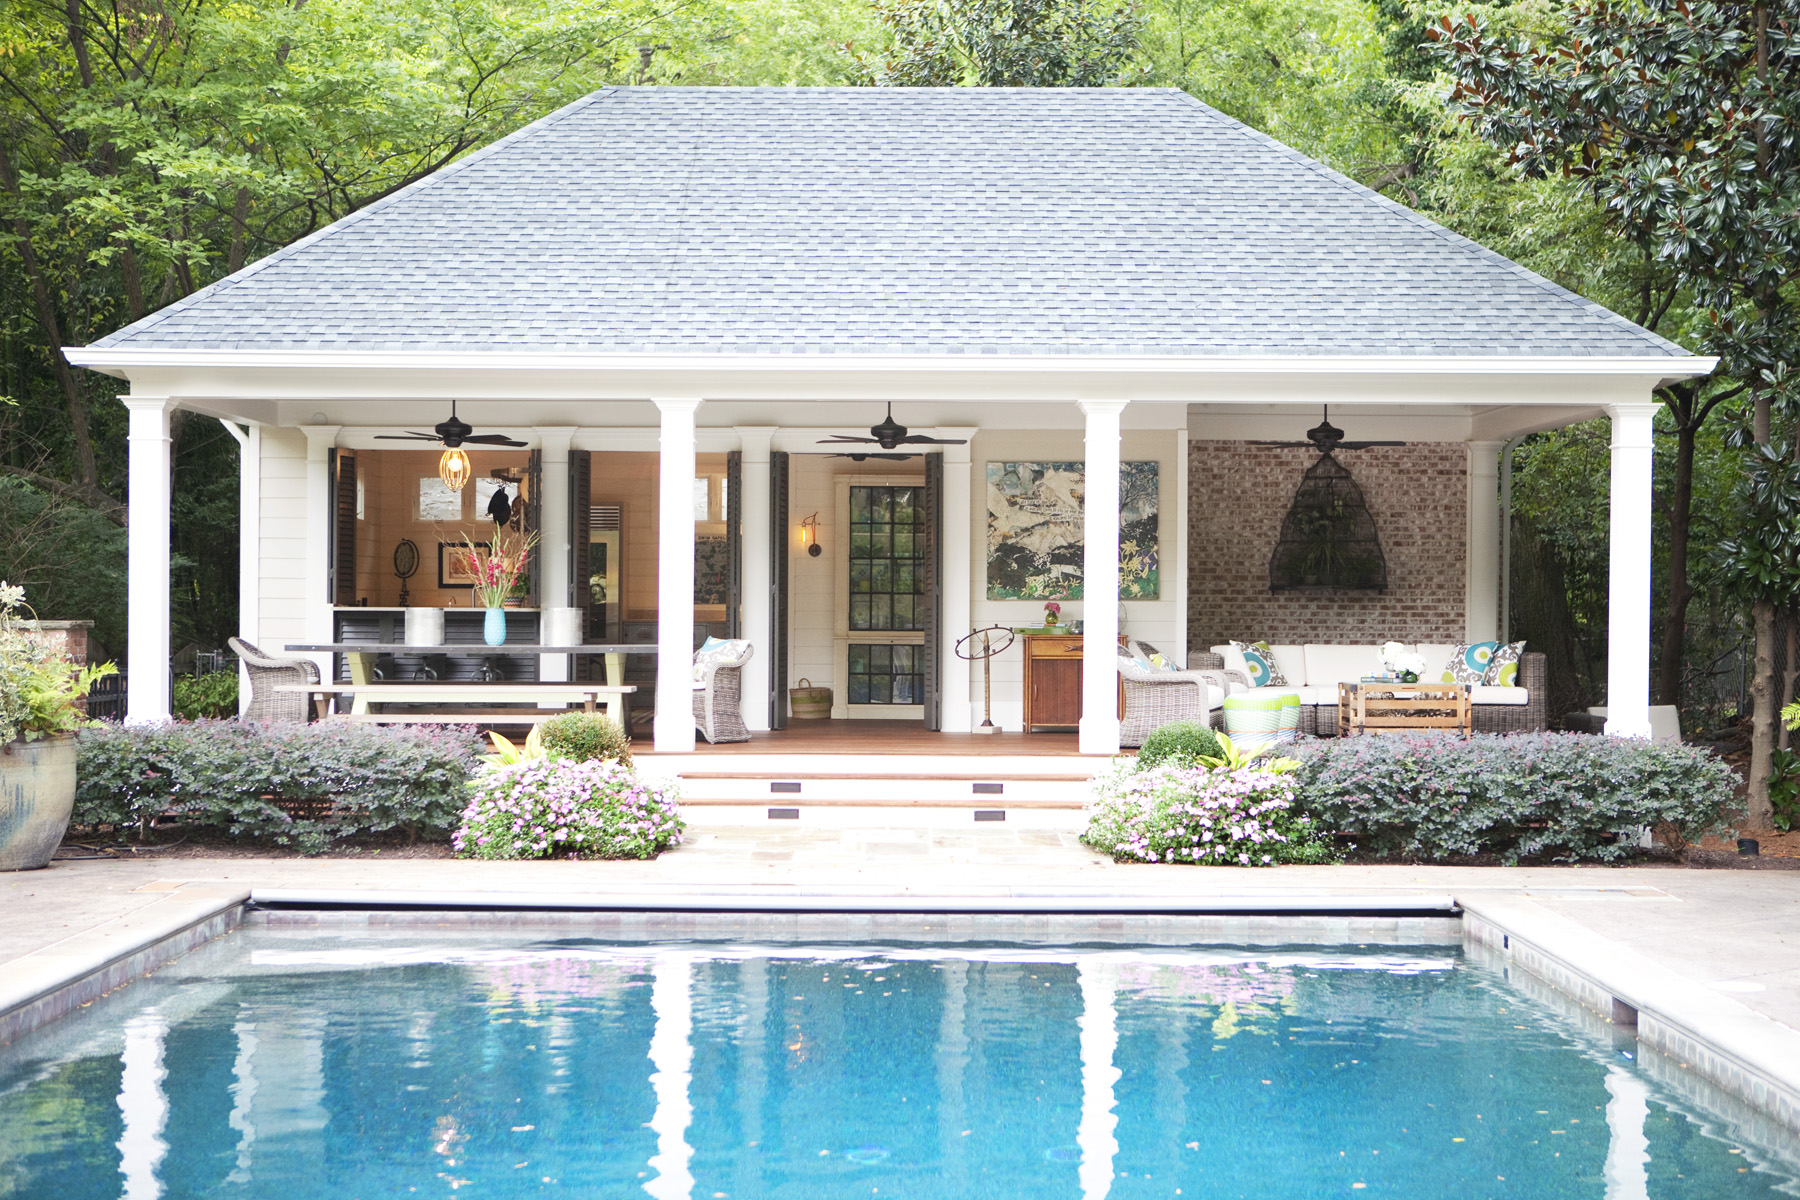 poolhouse1c.jpg